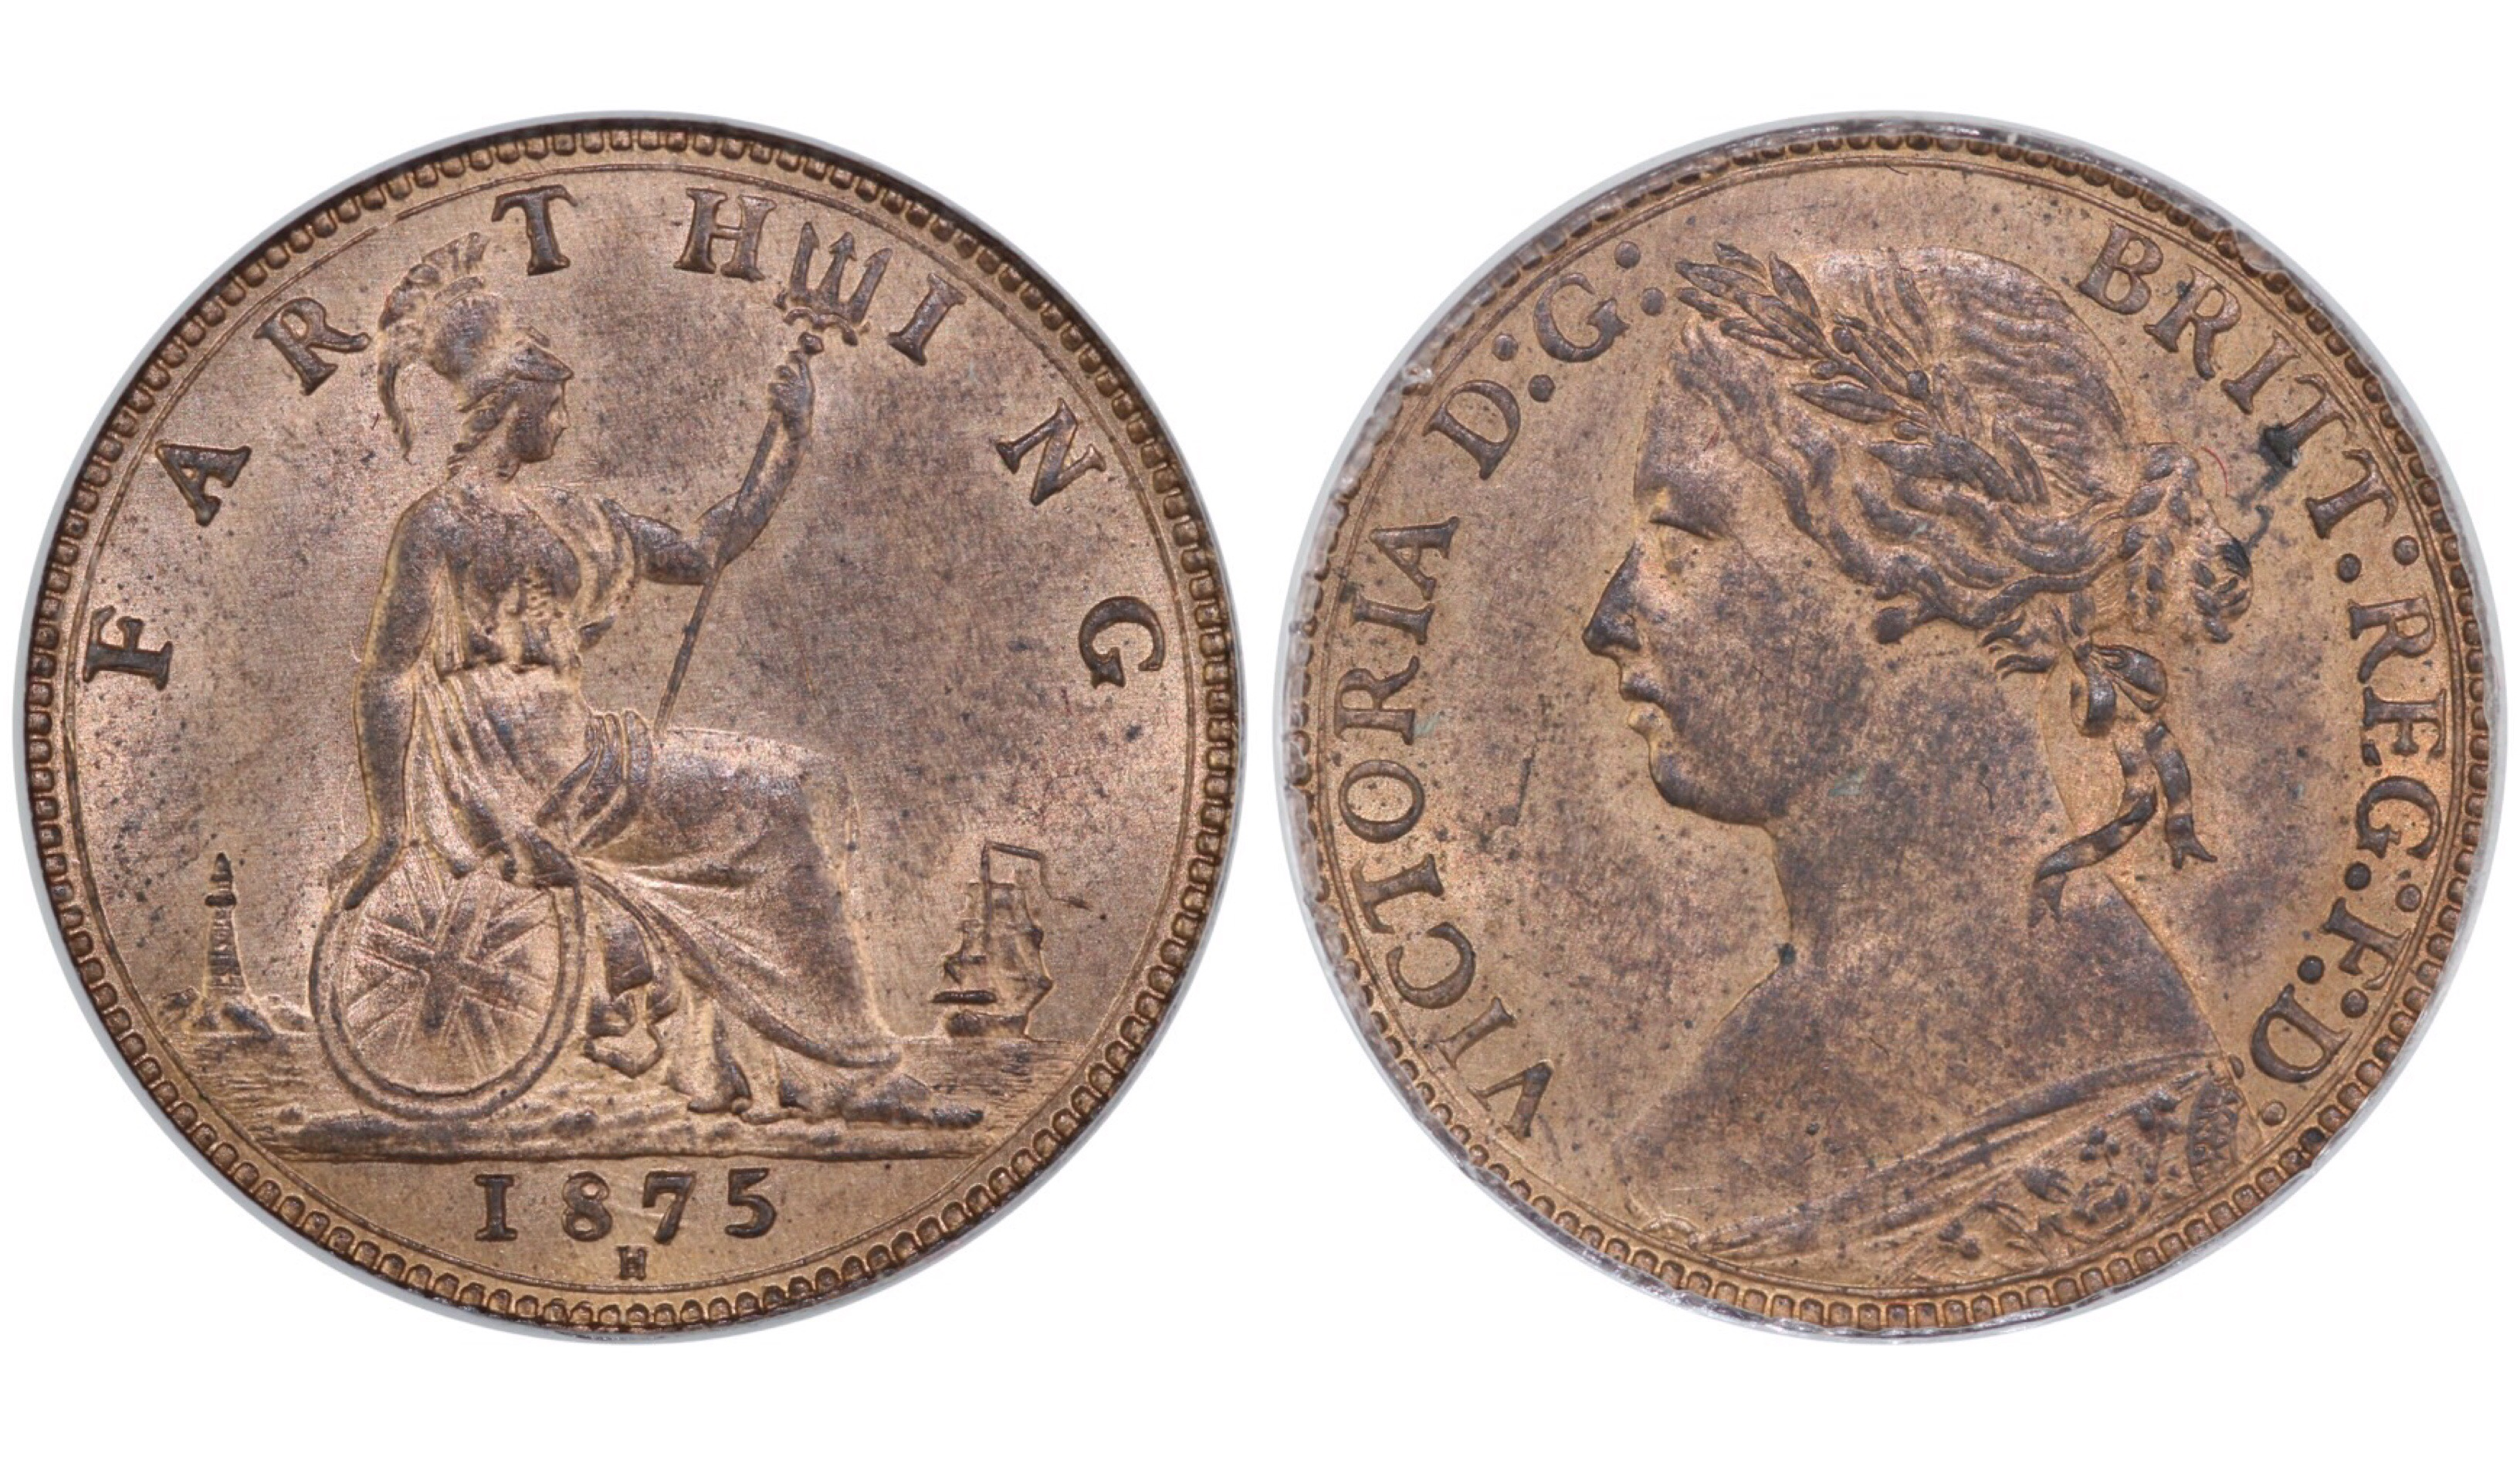 1875 H Farthing, CGS 78, Victoria, 4 berries, small date, RF.G, Freeman 532, UIN 22081